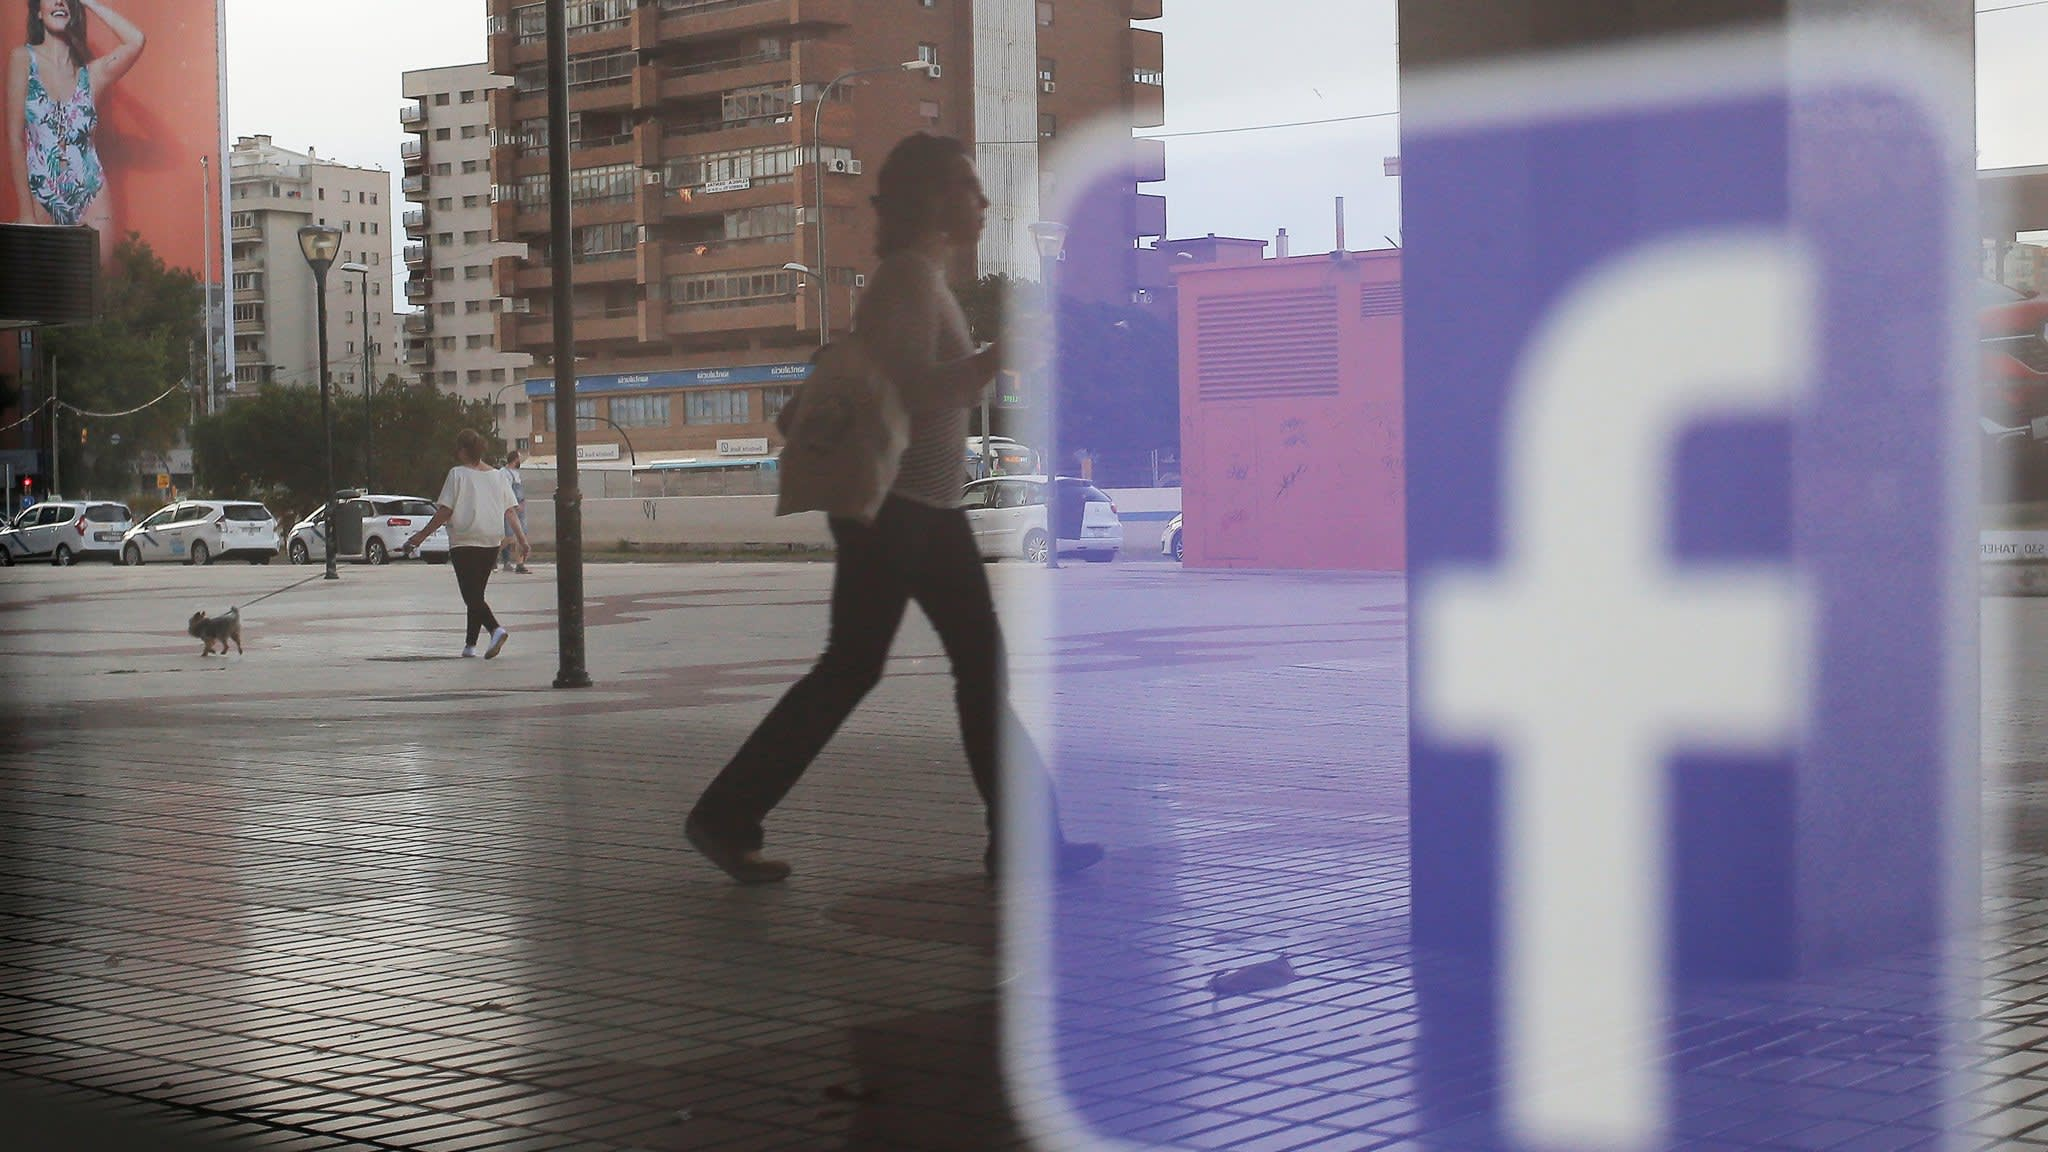 Fund managers count cost of Facebook's $120bn fall